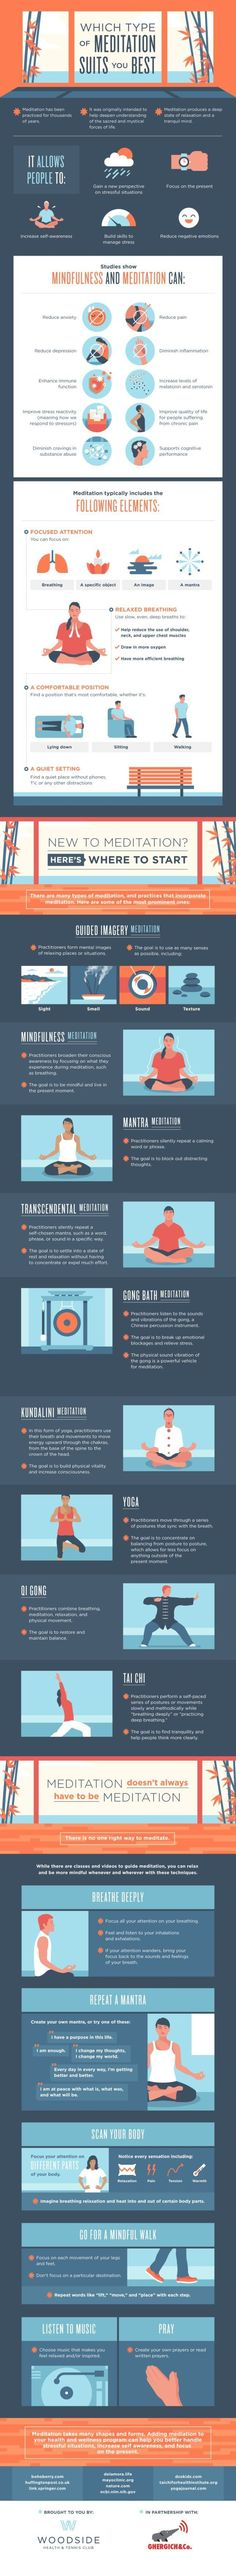 Here are 15 different types of meditation for you to try. Plus get your FREE copy of the guided white light meditation audio - https://www.pinchmeliving.com/types-of-meditation/